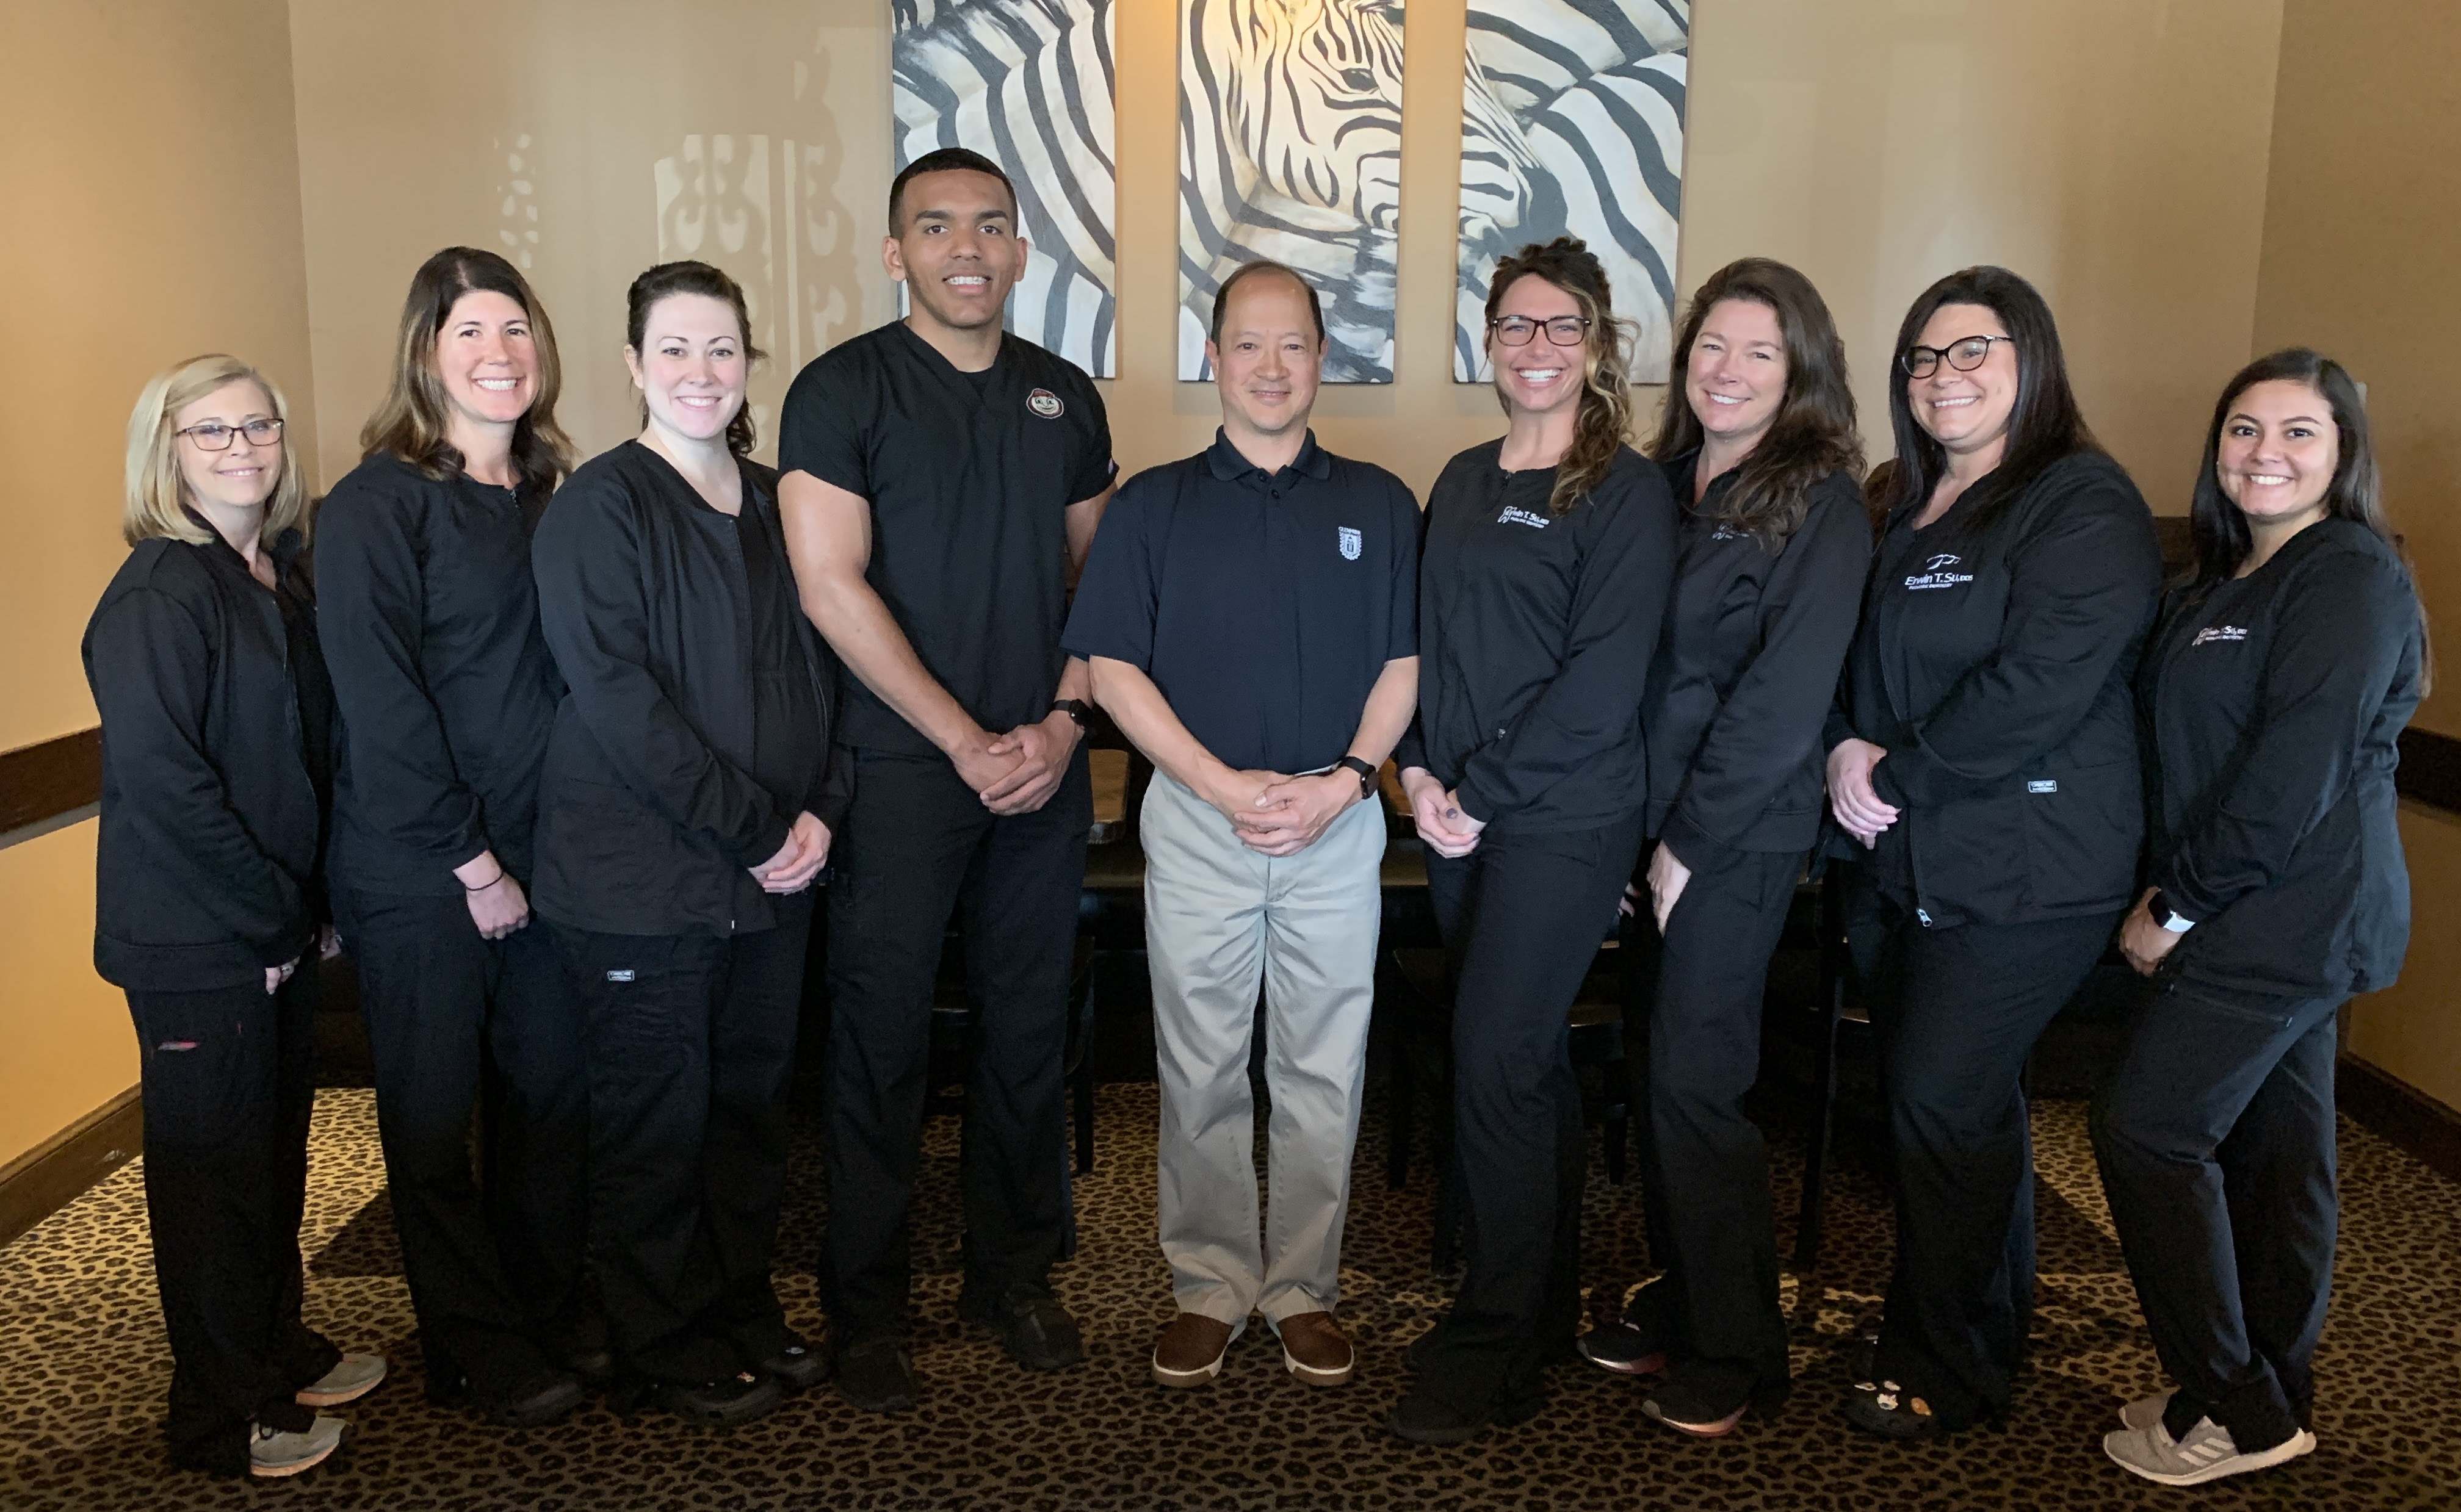 Erwin T. Su, DDS - Pediatric Dentist reviews   Pediatric Dentists at 6655 Frank Ave NW - North Canton OH